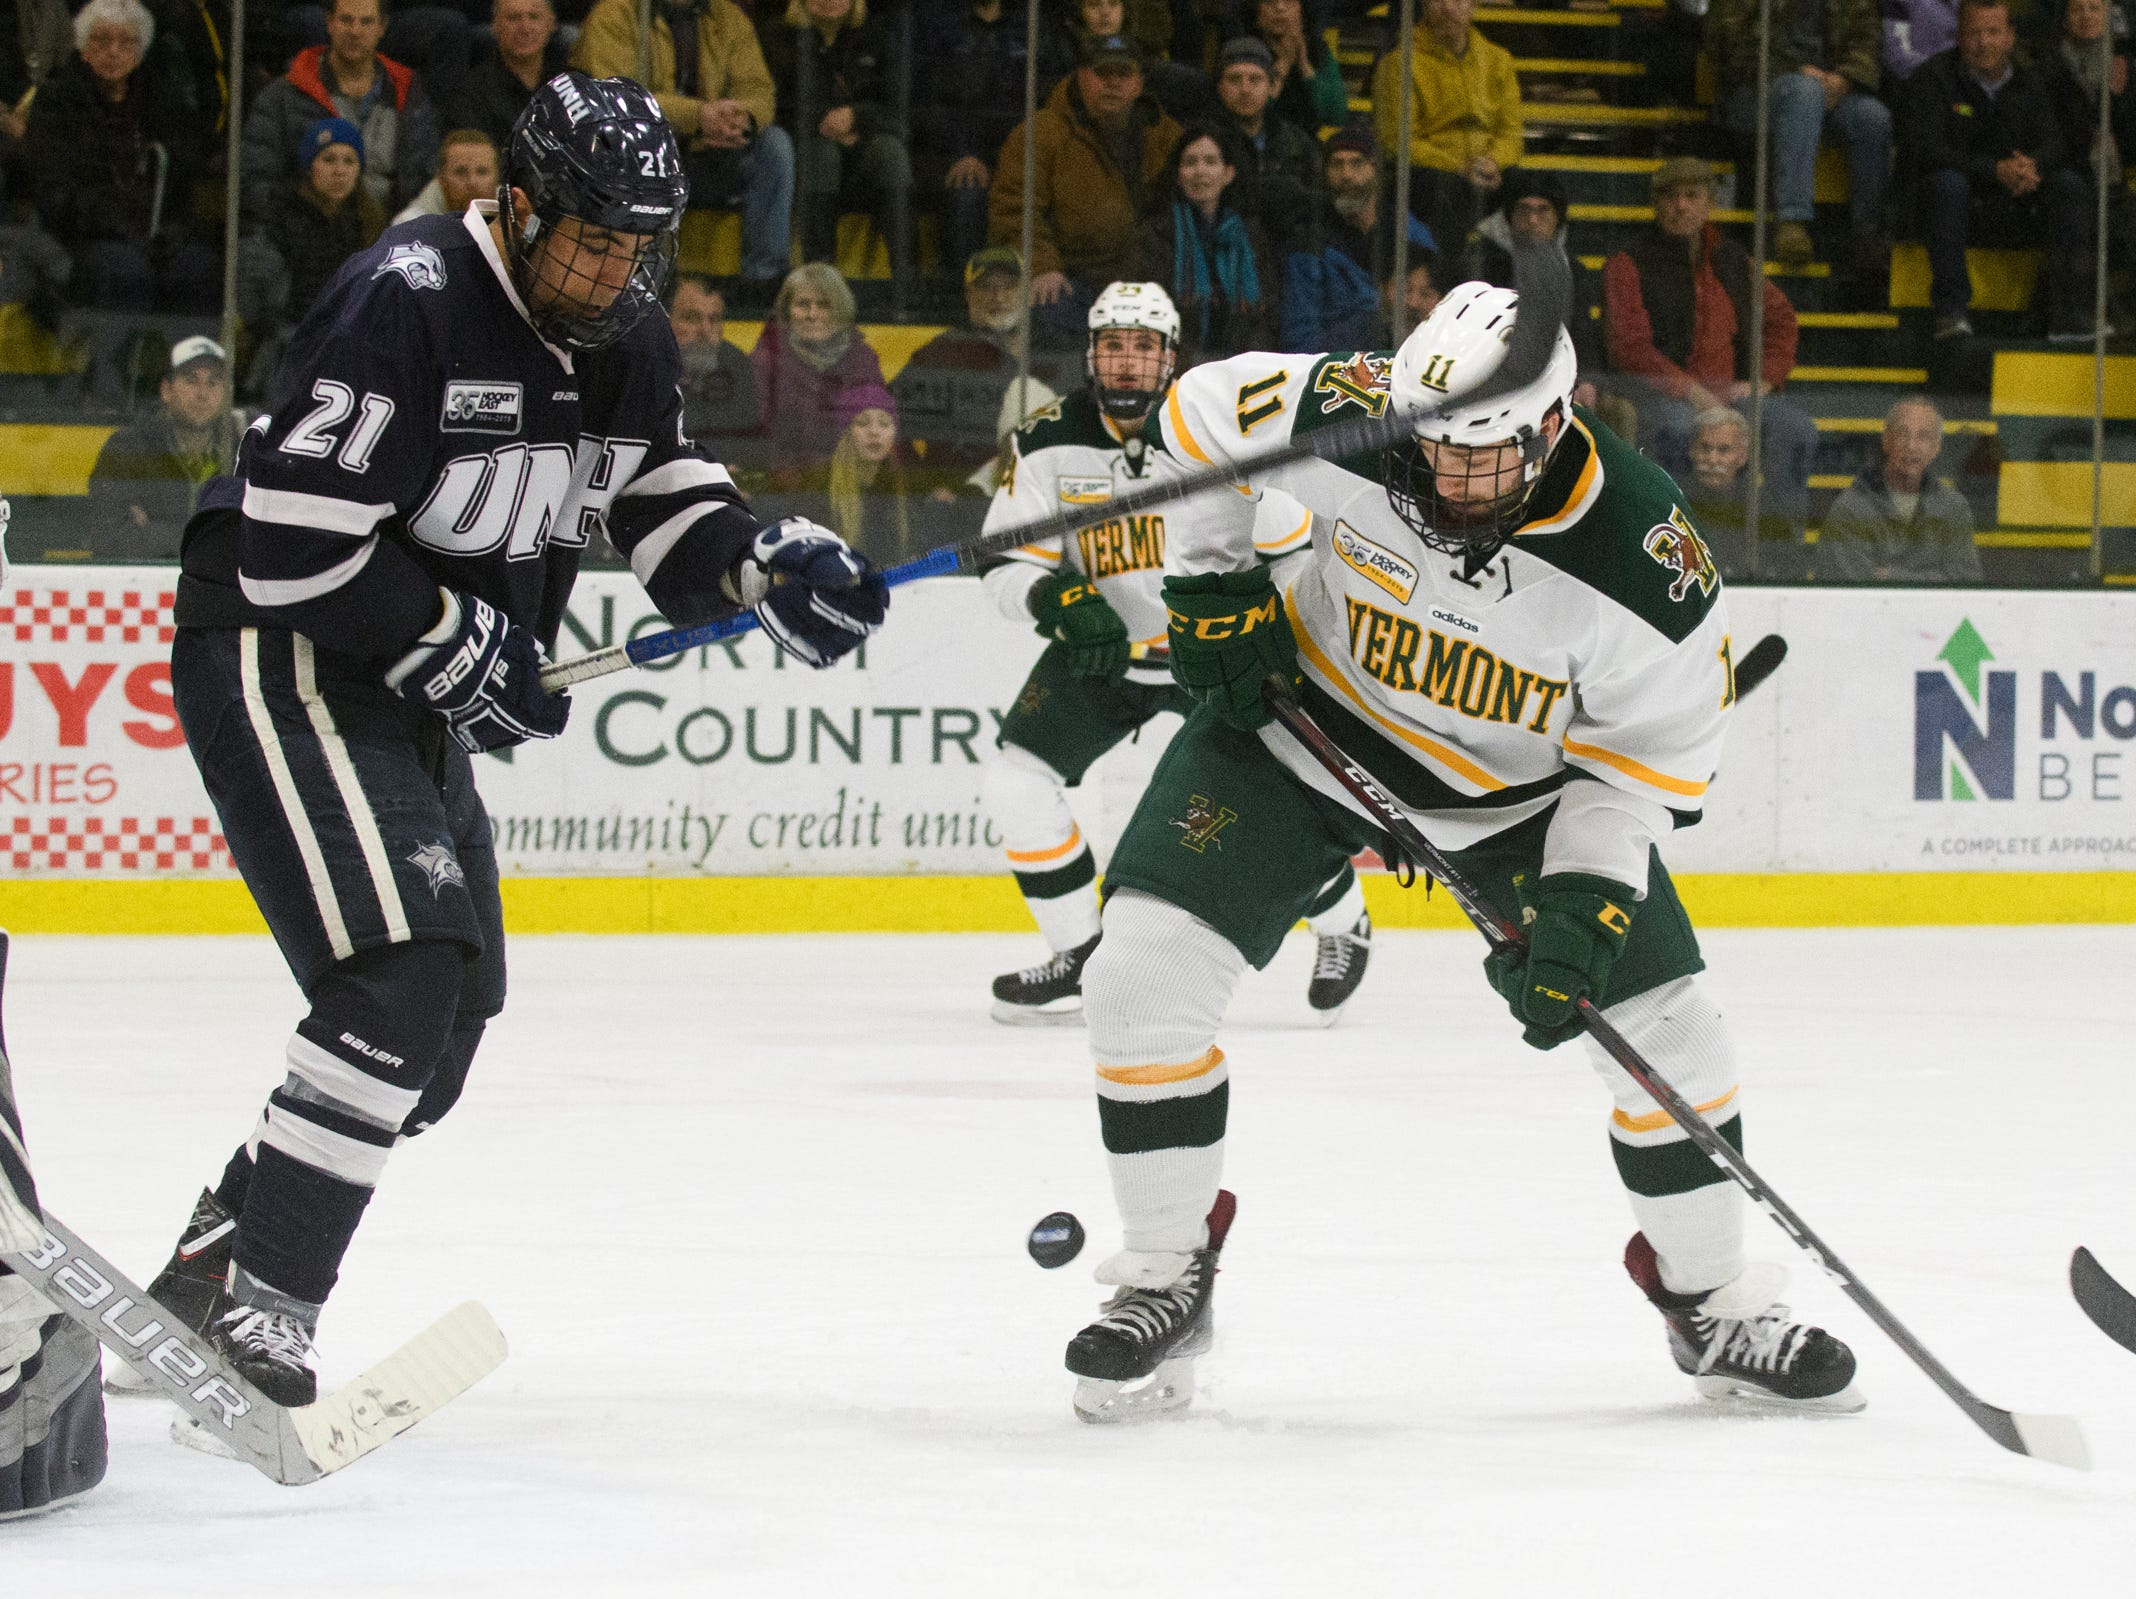 Vermont forward Conor O'Neil (11) battles for the puck in front of the New Hampshire net during the men's hockey game between the New Hampshire Wildcats and the Vermont Catamounts at Gutterson Field House on Friday night February 8, 2019 in Burlington, Vermont.